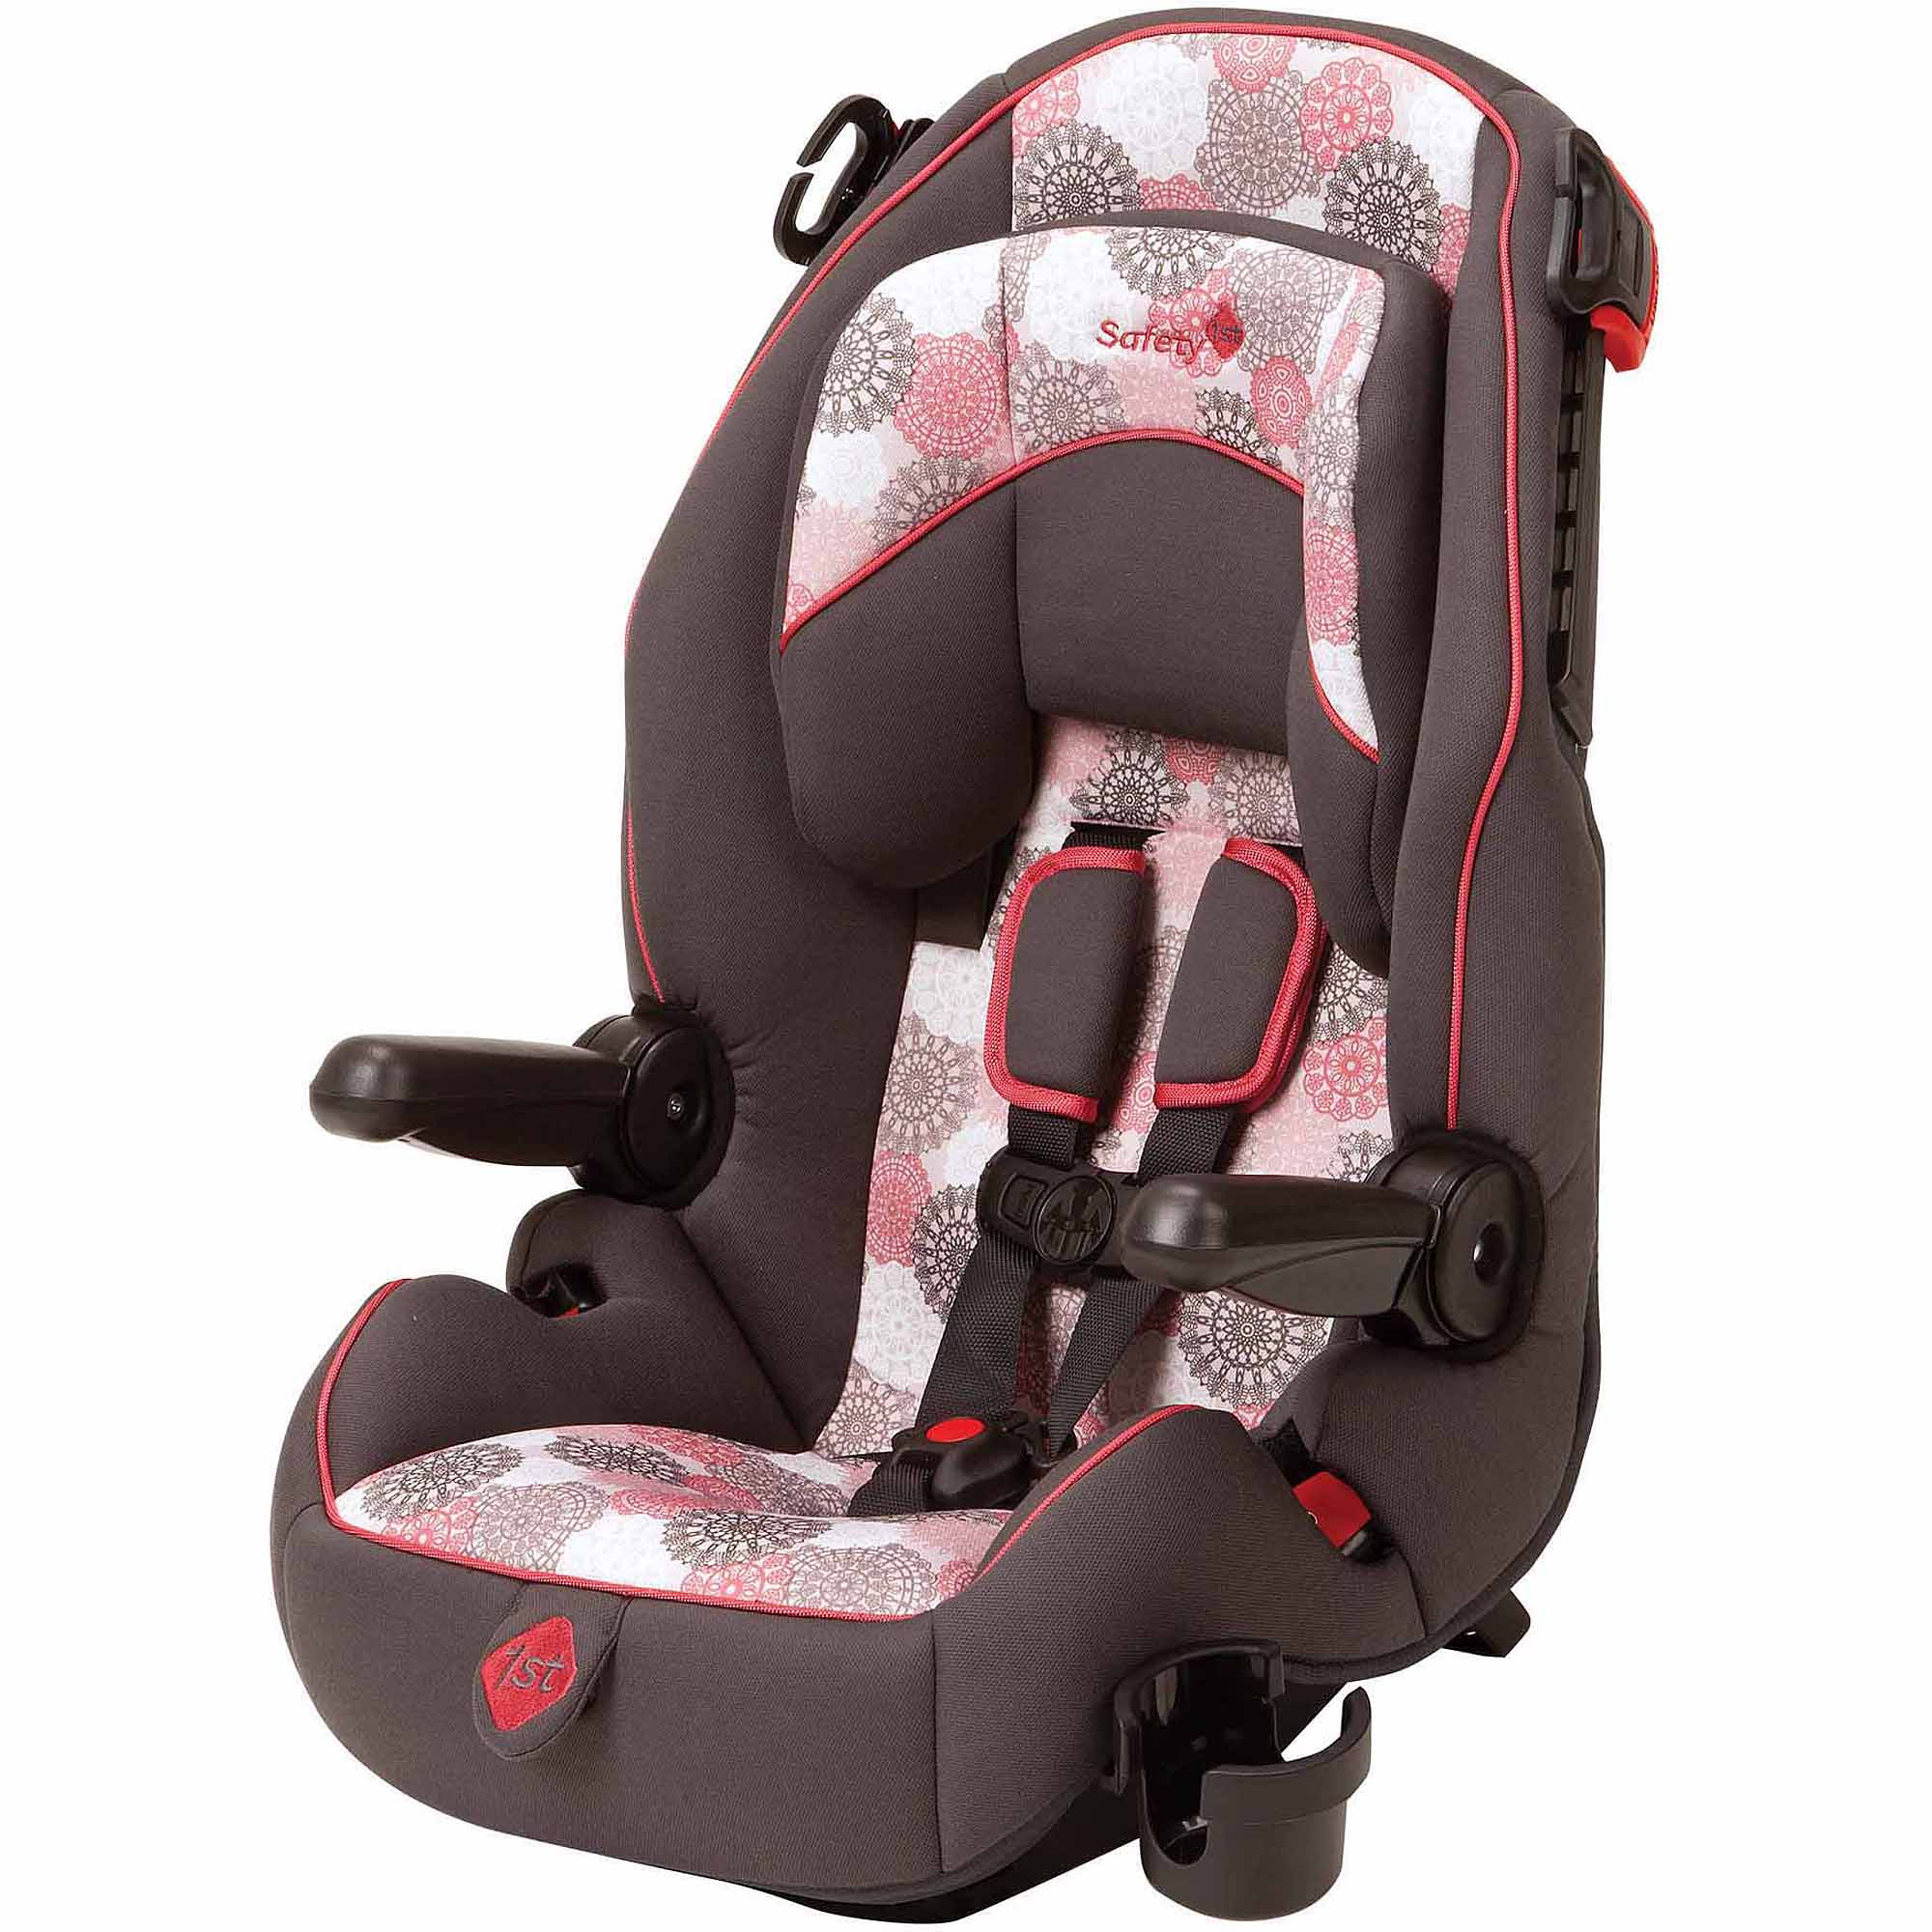 Safety 1st Summit Booster Car Seat, Chateau-Black